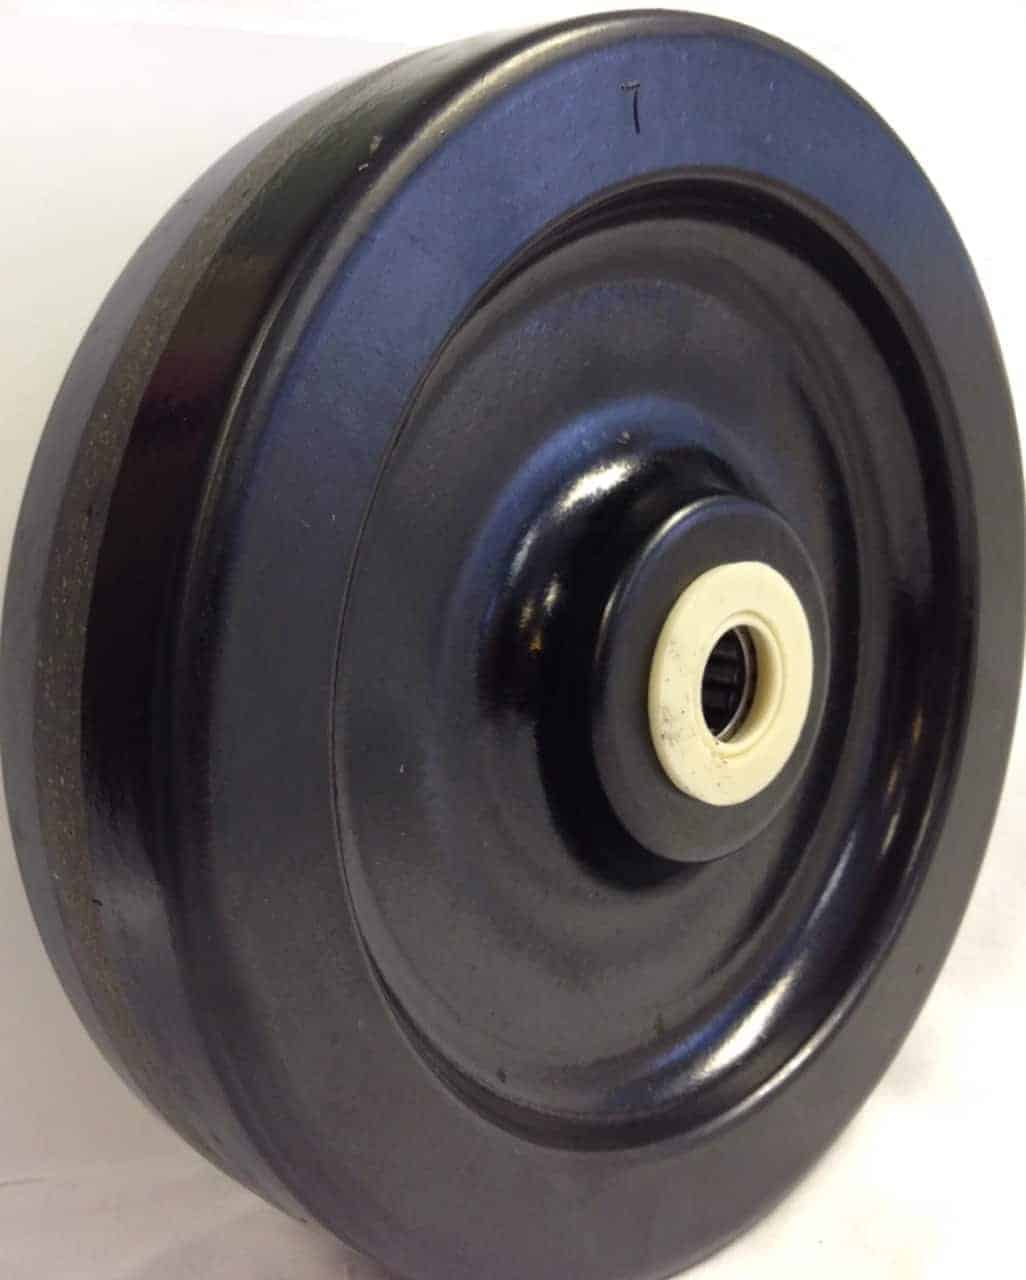 12″ Phenolic Wheel With 4-1/4″ Hub 1-1/4″ Roller Bearing 4000 Lbs Capacity